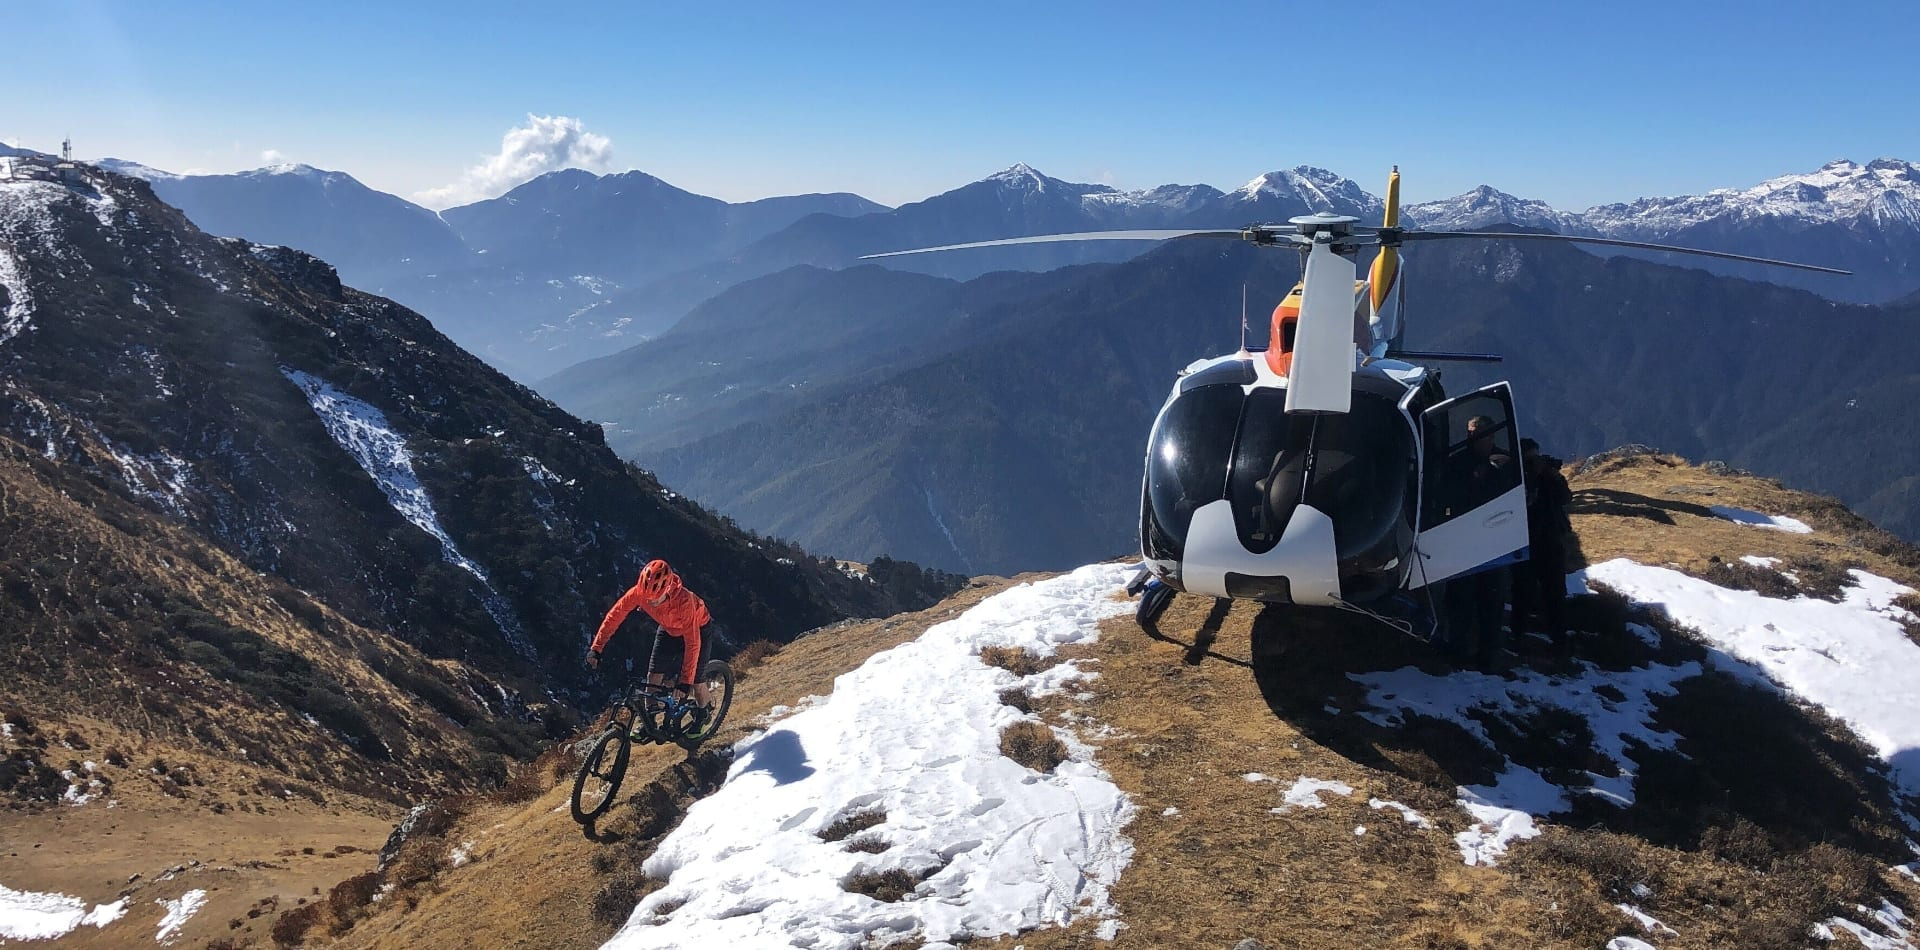 Heli-biking in Bhutan